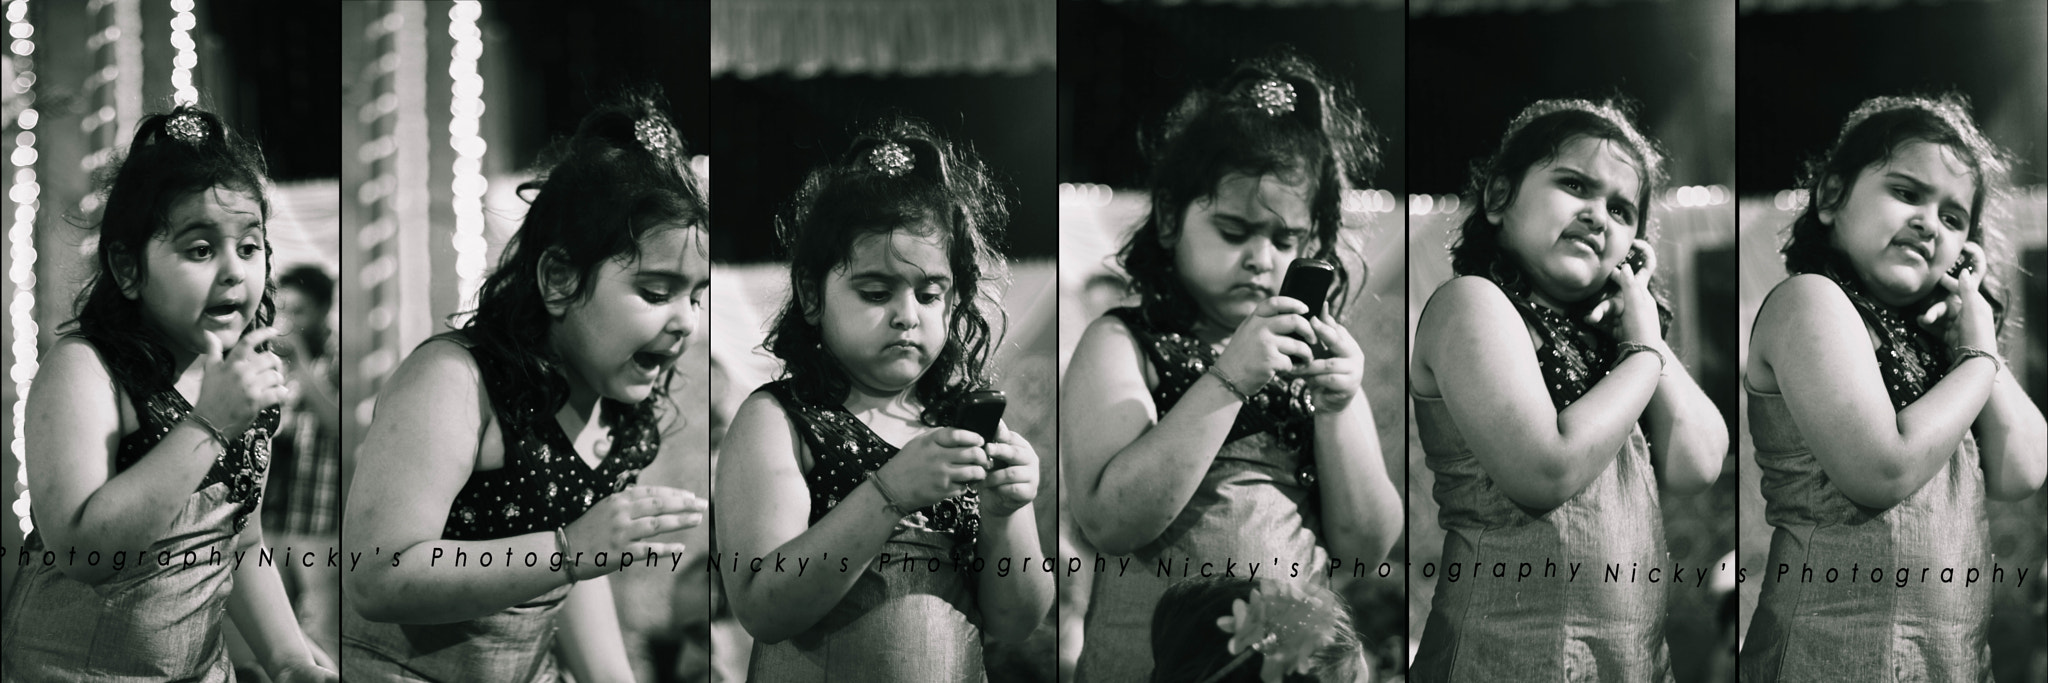 Photograph Expressions! by Nicky Jain on 500px